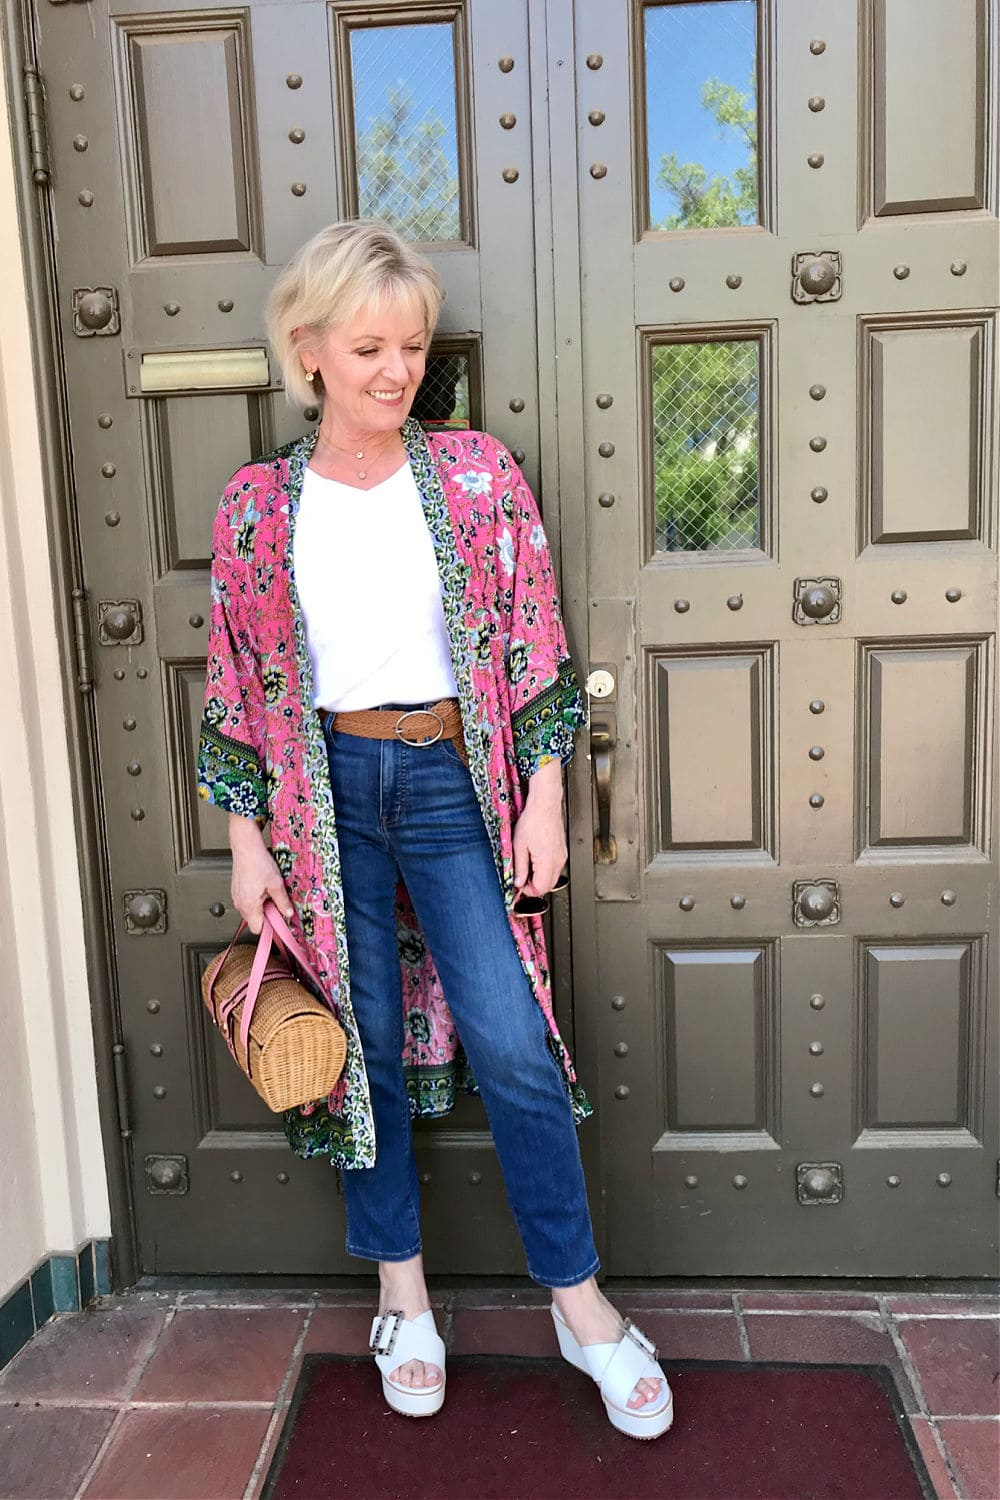 blonde woman wearing pink kimono ovr white tee and blue jeans